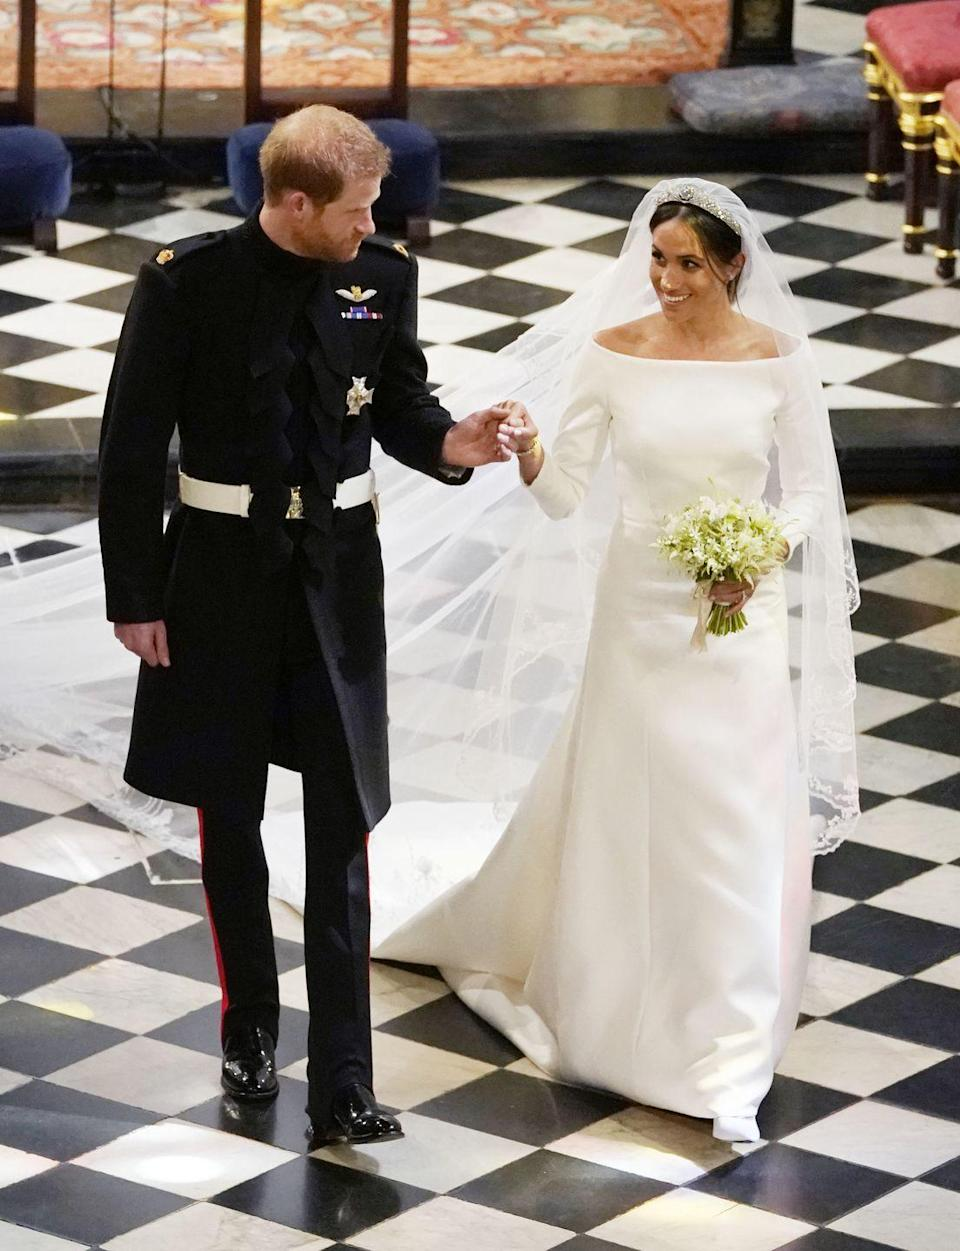 "<p>Meghan <em>also </em>chose to omit ""obey"" from her vows. She and Prince Harry took it a step further by using casual monikers during their service, which was a change in royal tradition.</p>"